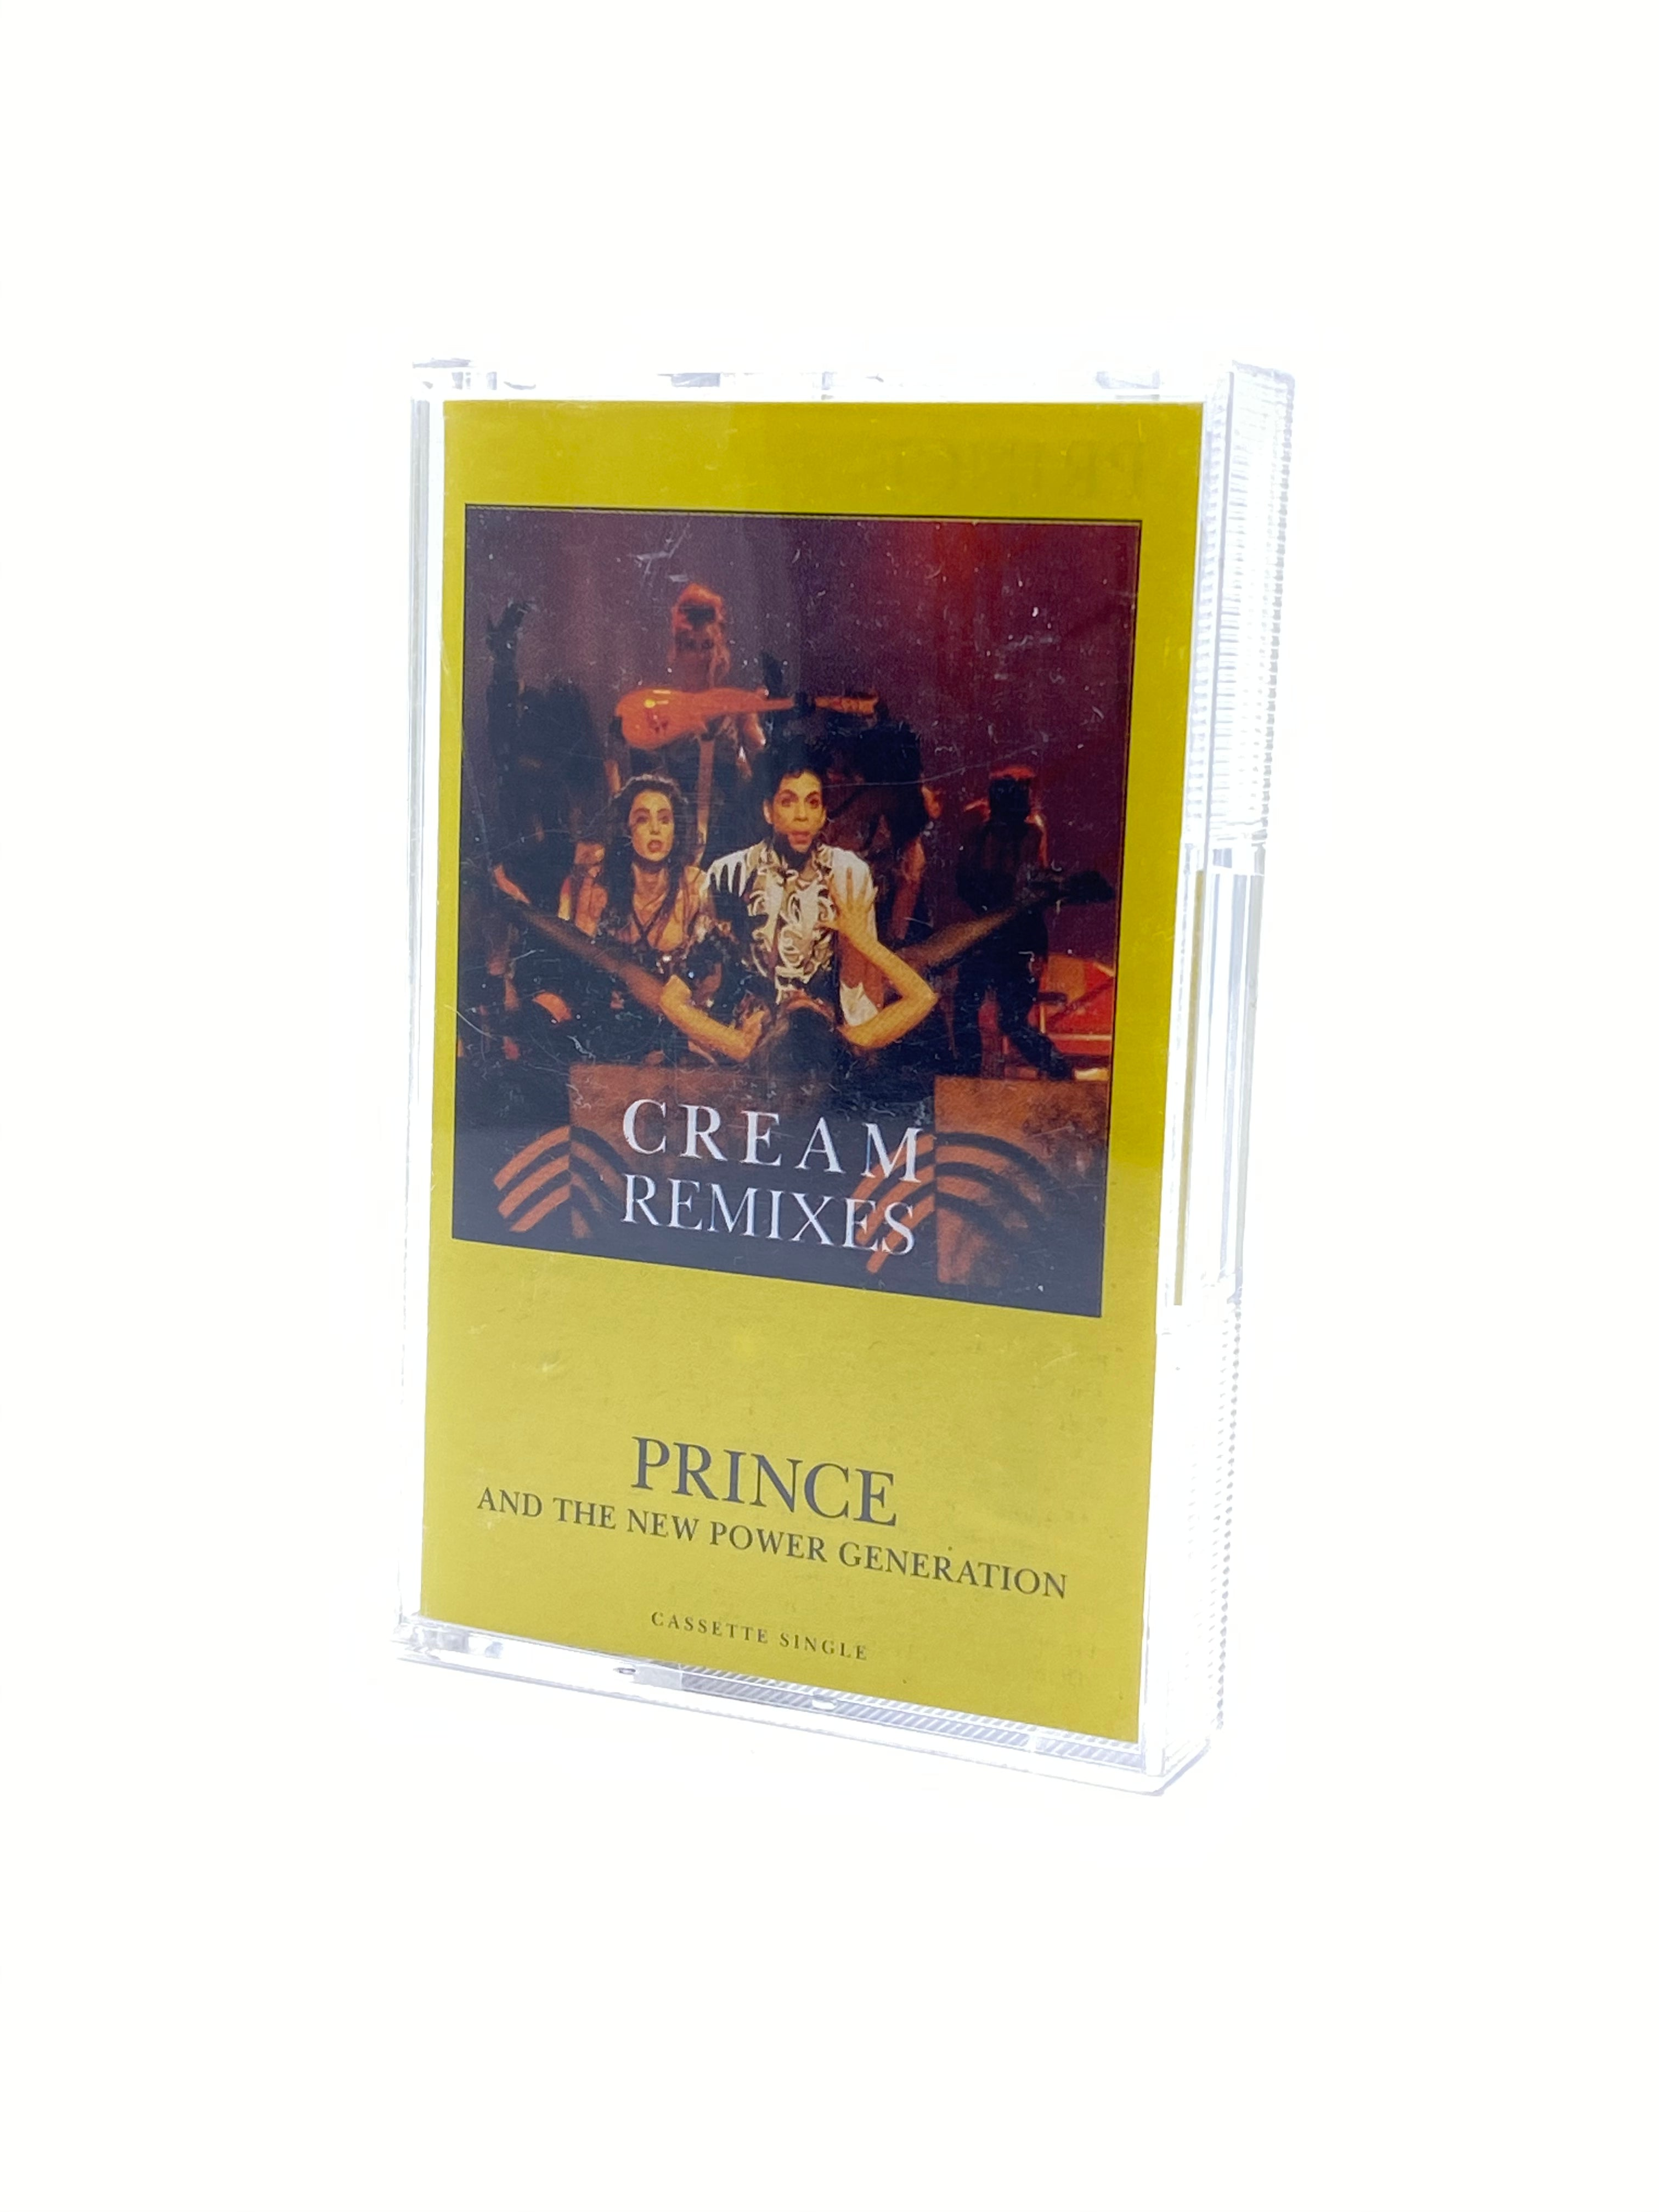 Prince & The NPG Cream Remixes Original UK Cassette Tape Single IB